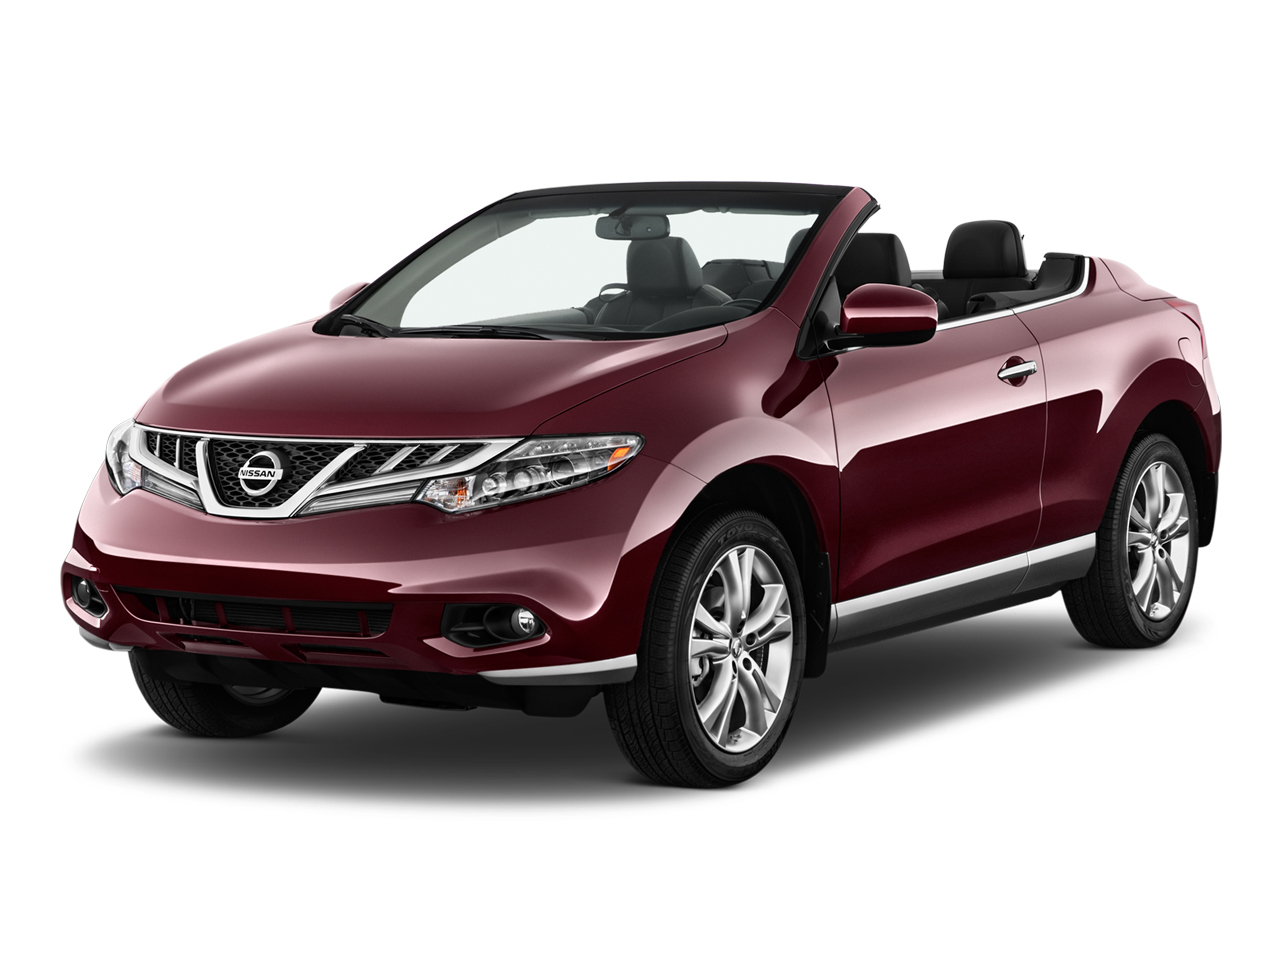 2011 Nissan Murano Crosscabriolet Review Ratings Specs Prices And Photos The Car Connection